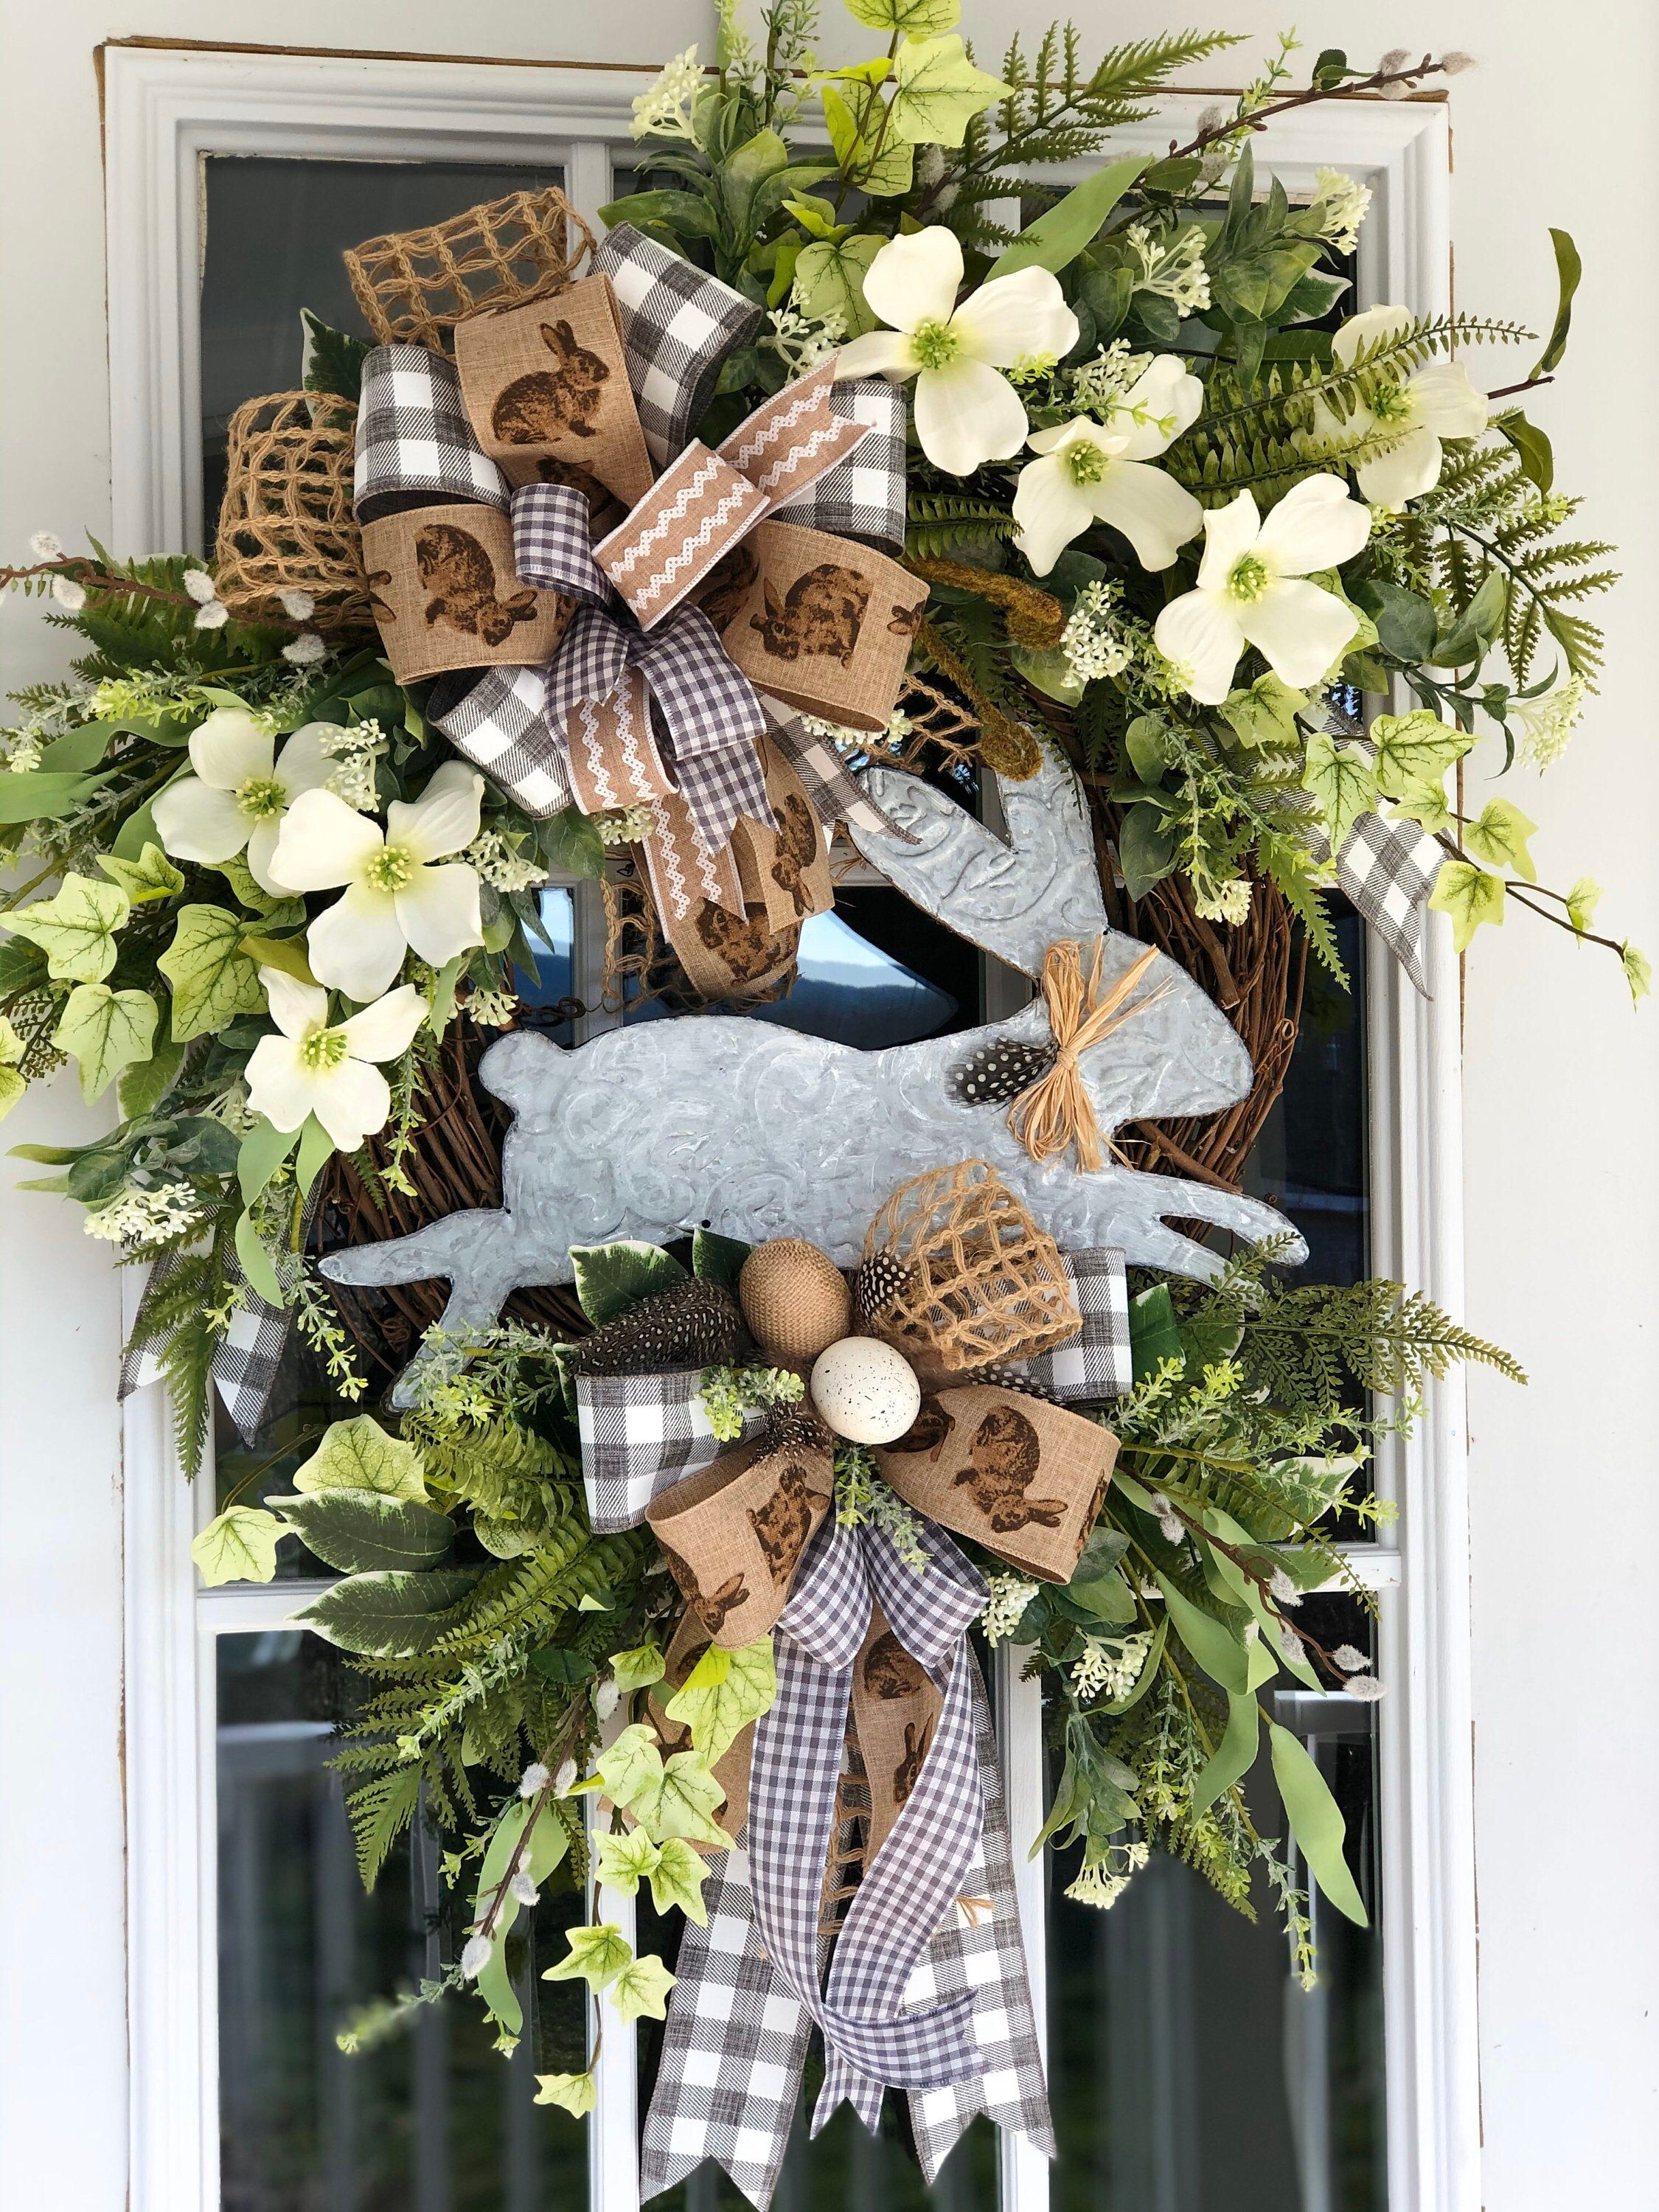 Photo of French Country Spring Wreath, Leaping Bunny Wreath, Farmhouse Spring Wreath, Easter Wreath, French Country Bunny Wreath, Front Door Wreath